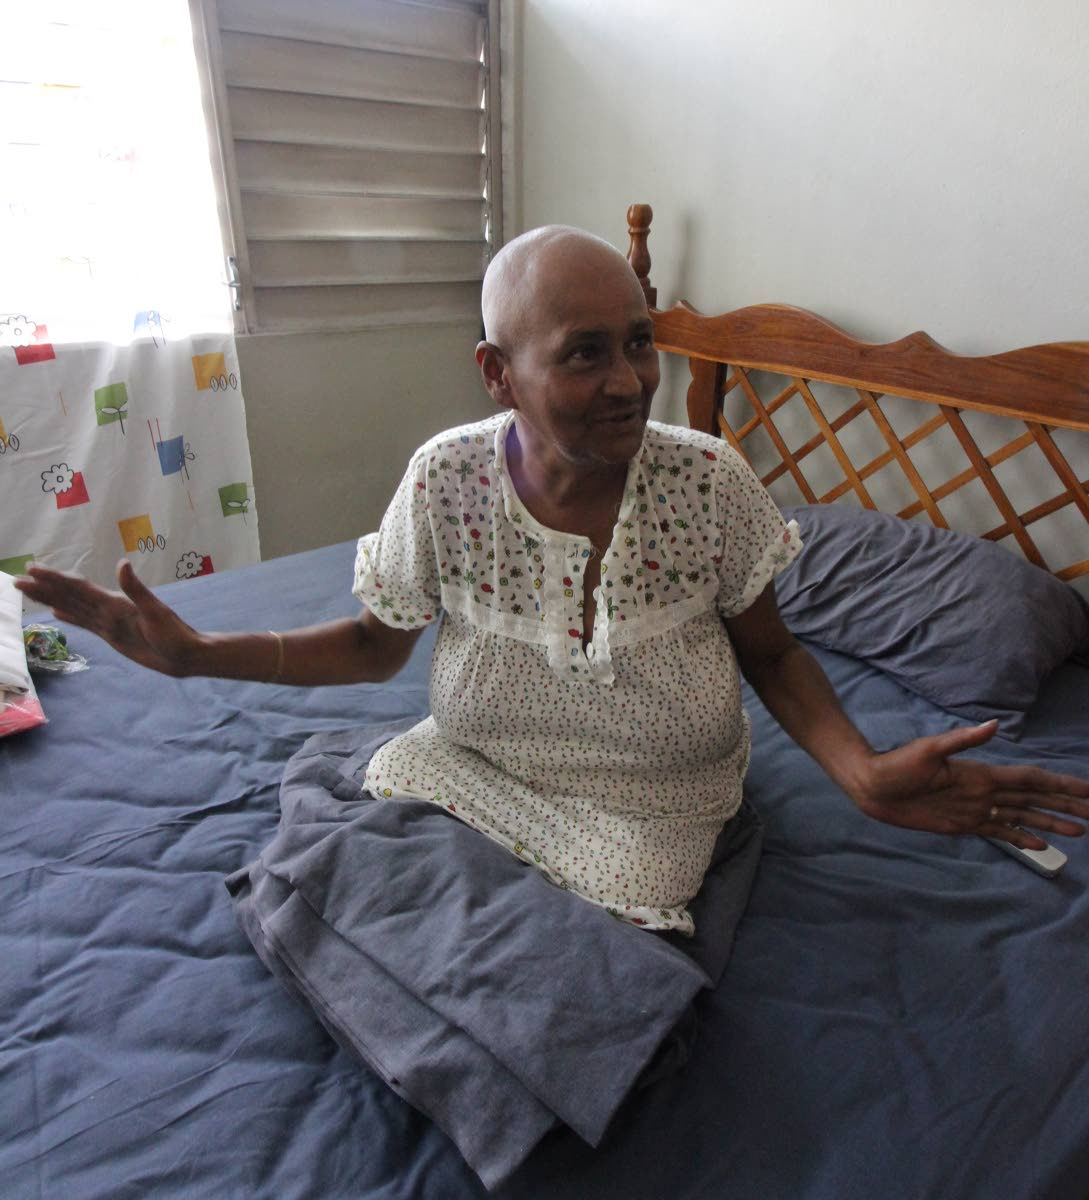 I good: Amputee Erica Joseph is grateful yesterday for the apartment she and her husband now have at Charford Court, Charlotte Street, Port-of-Spain after living under a tent at Queen's Park Savannah recently. Photo by Roger Jacob